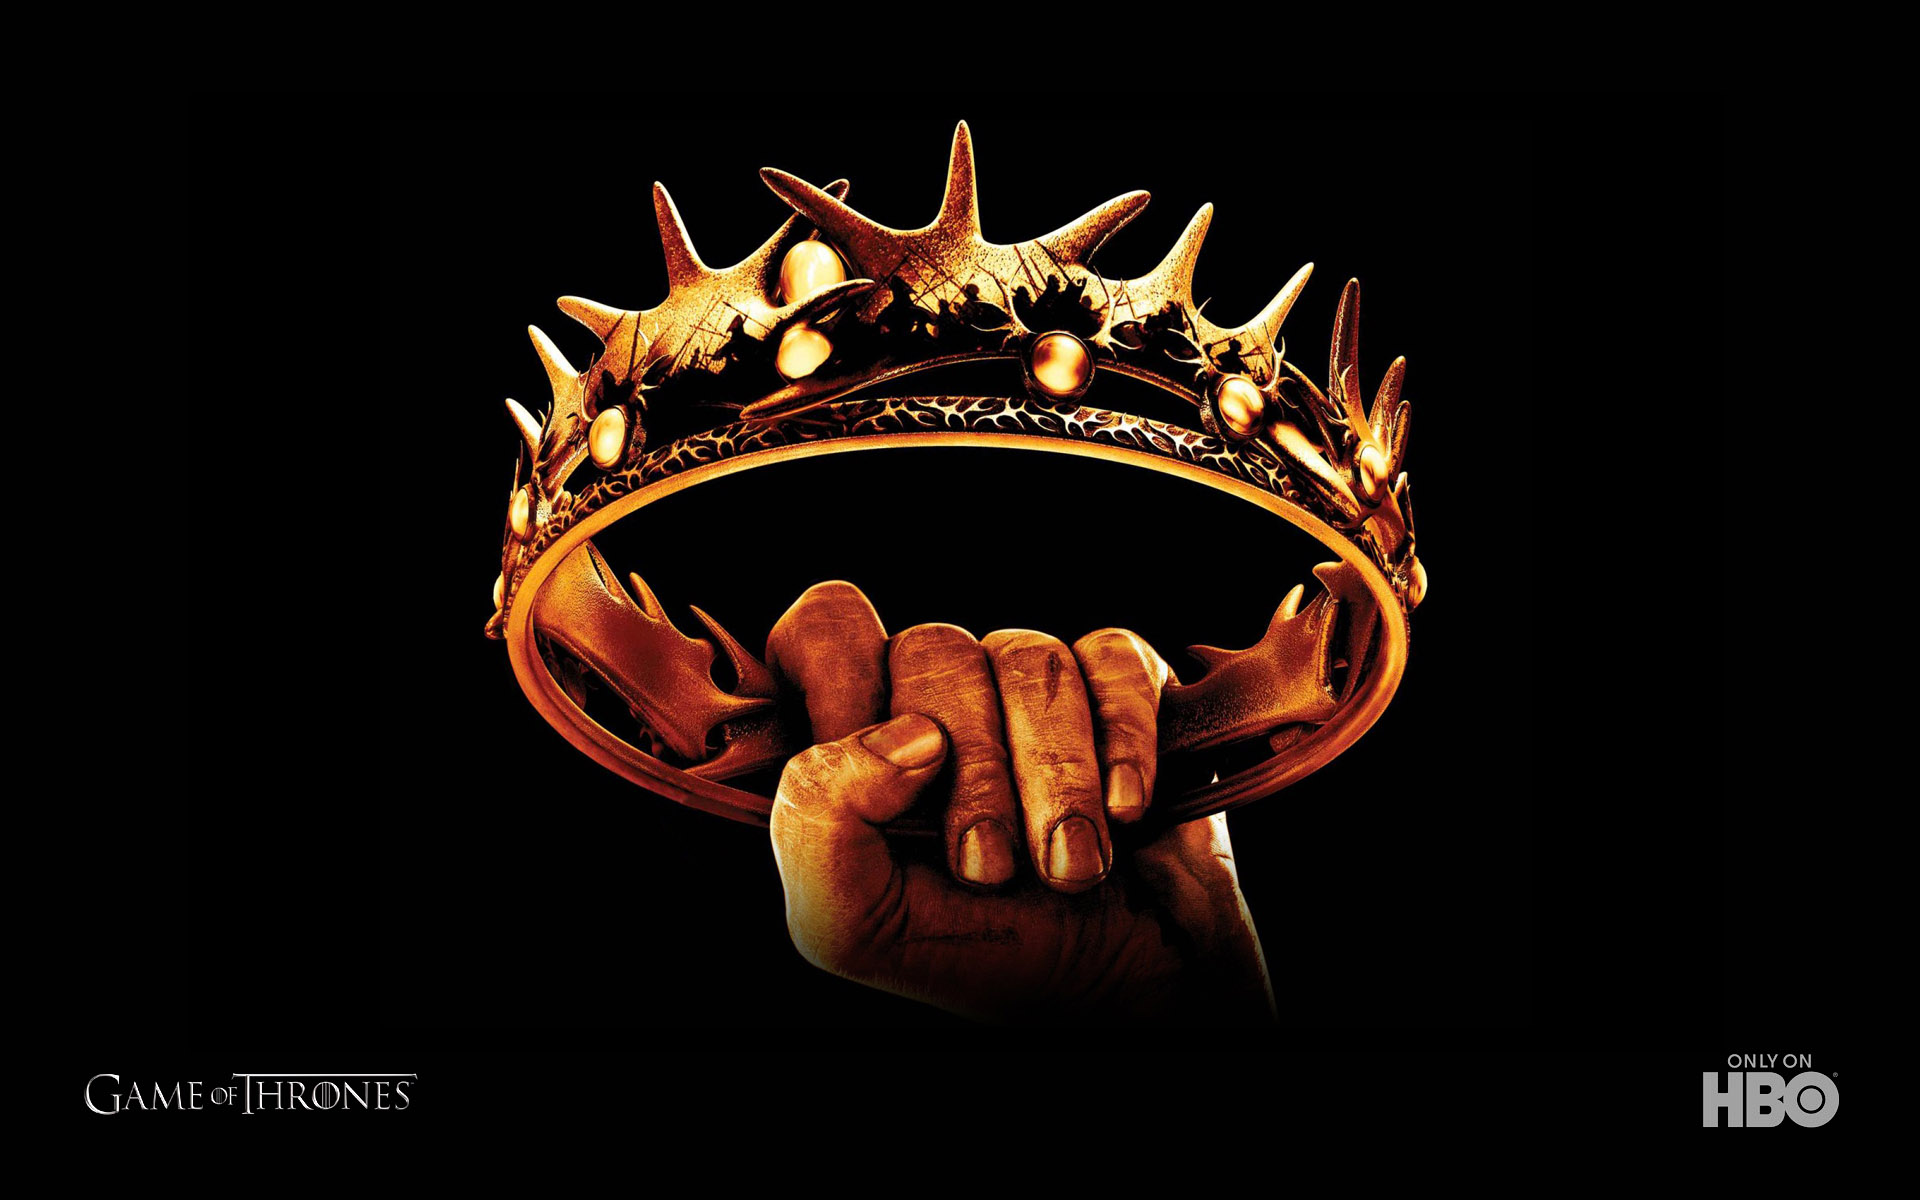 uneasy lies the head that wears a crown in game of thrones i uneasy lies the head that wears a crown in game of thrones i can t possibly be wrong all the time